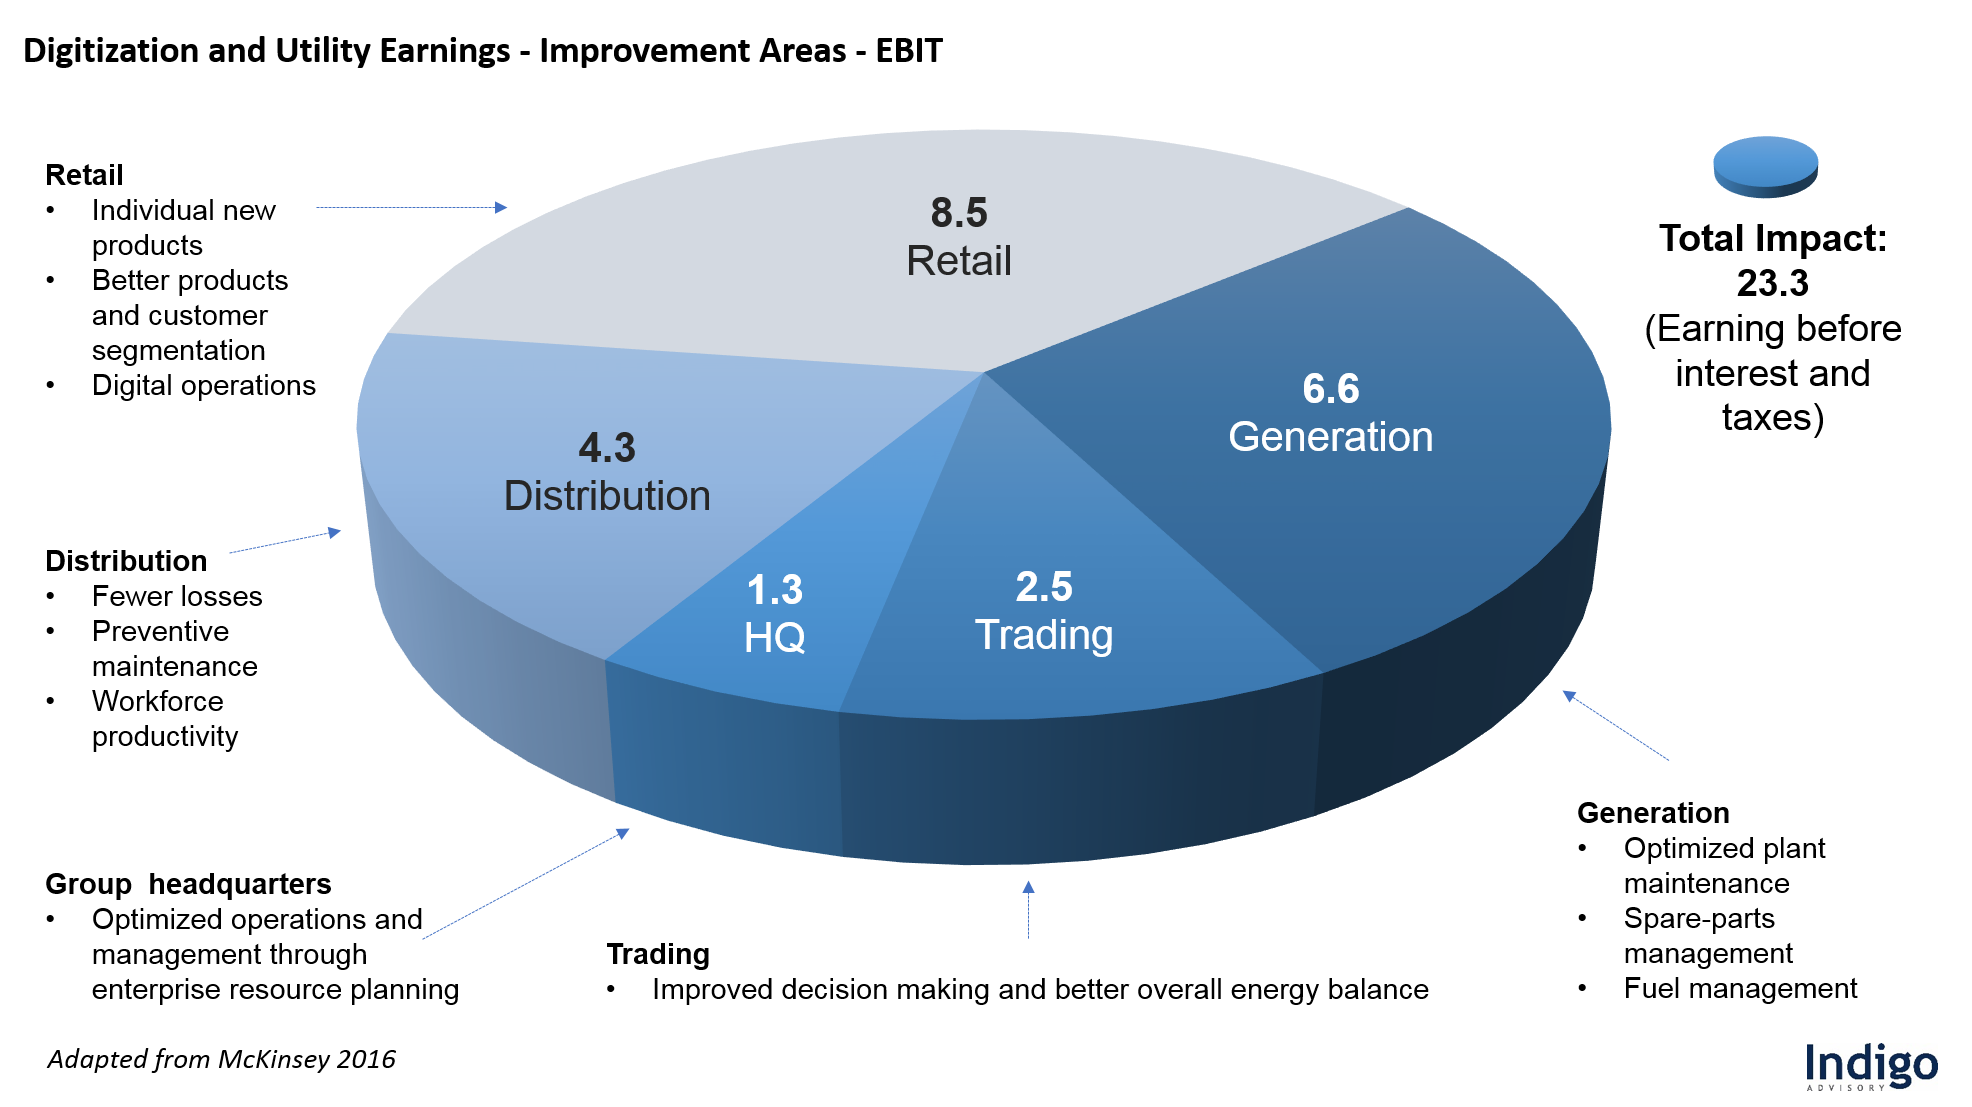 Digitization and Utility Earnings - Improvement Areas - EBIT